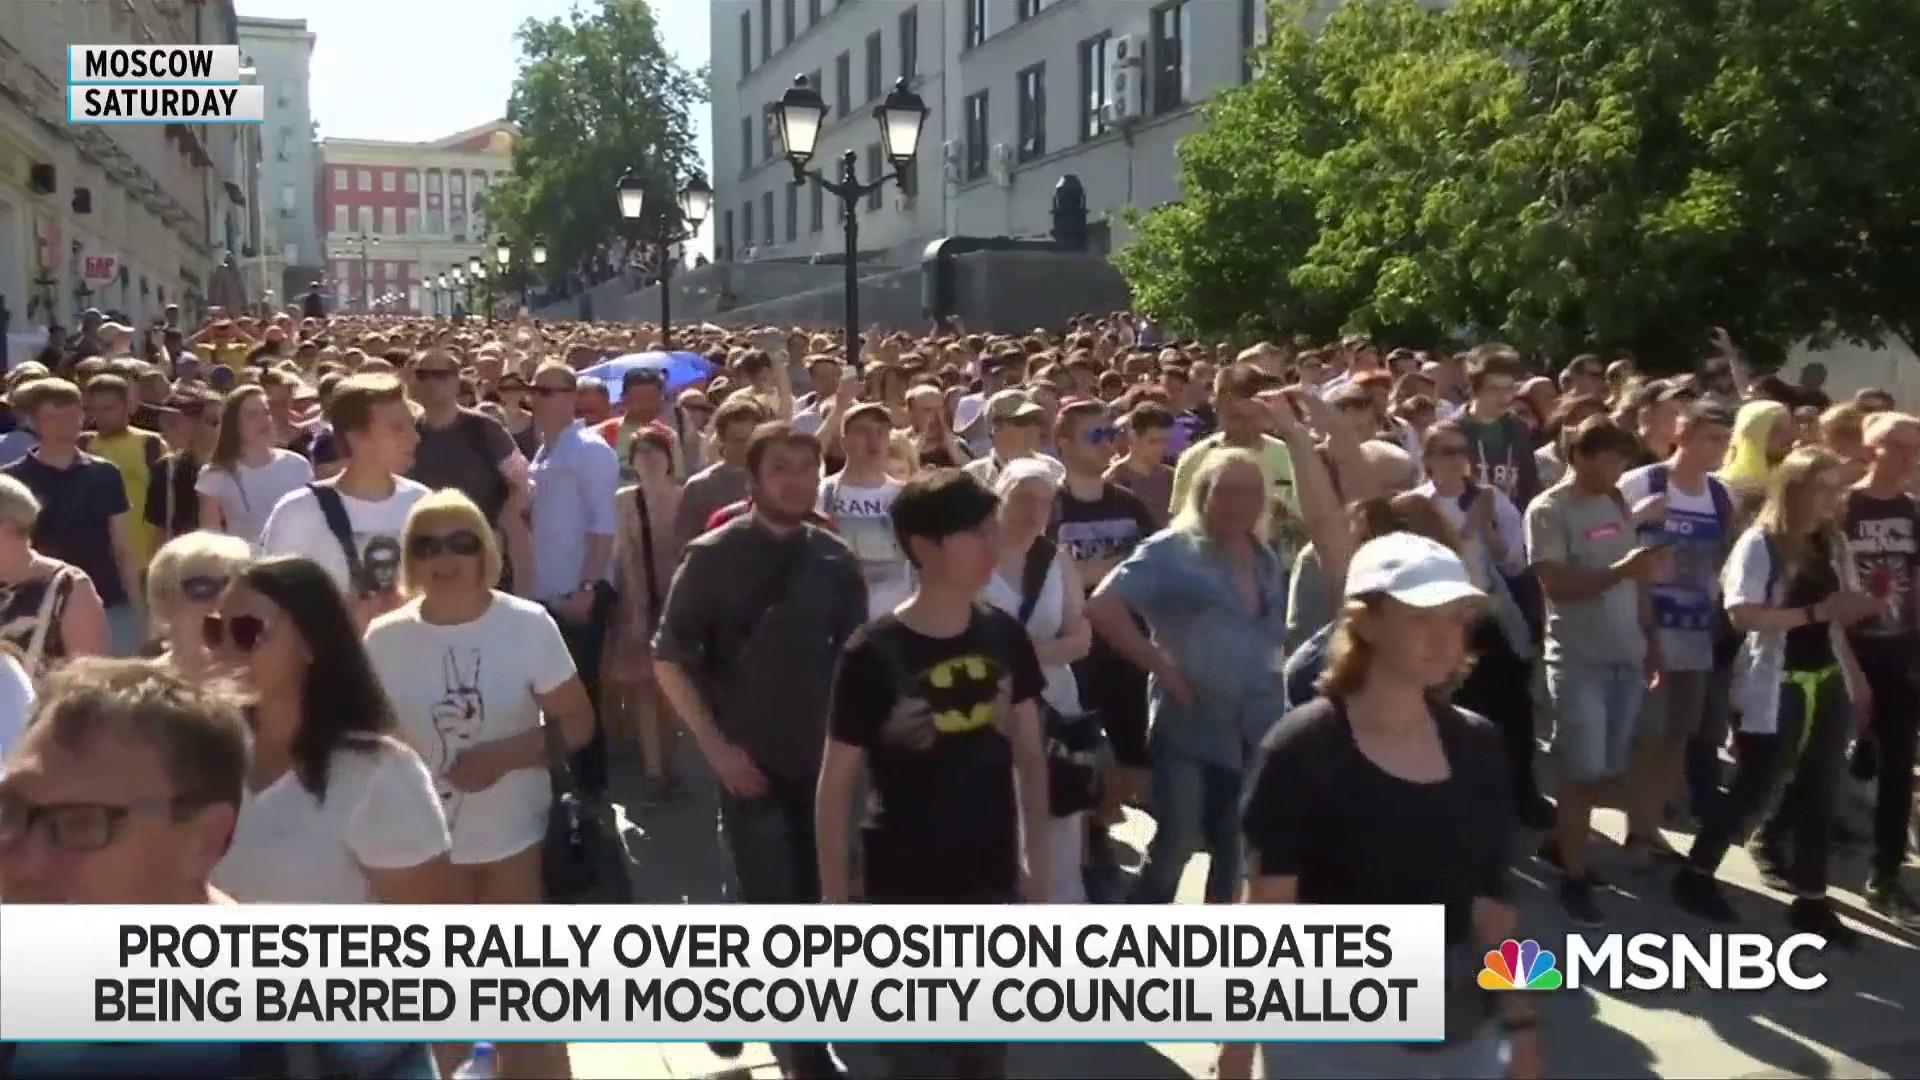 Mass arrests at Moscow protest point to cracks in Putin control